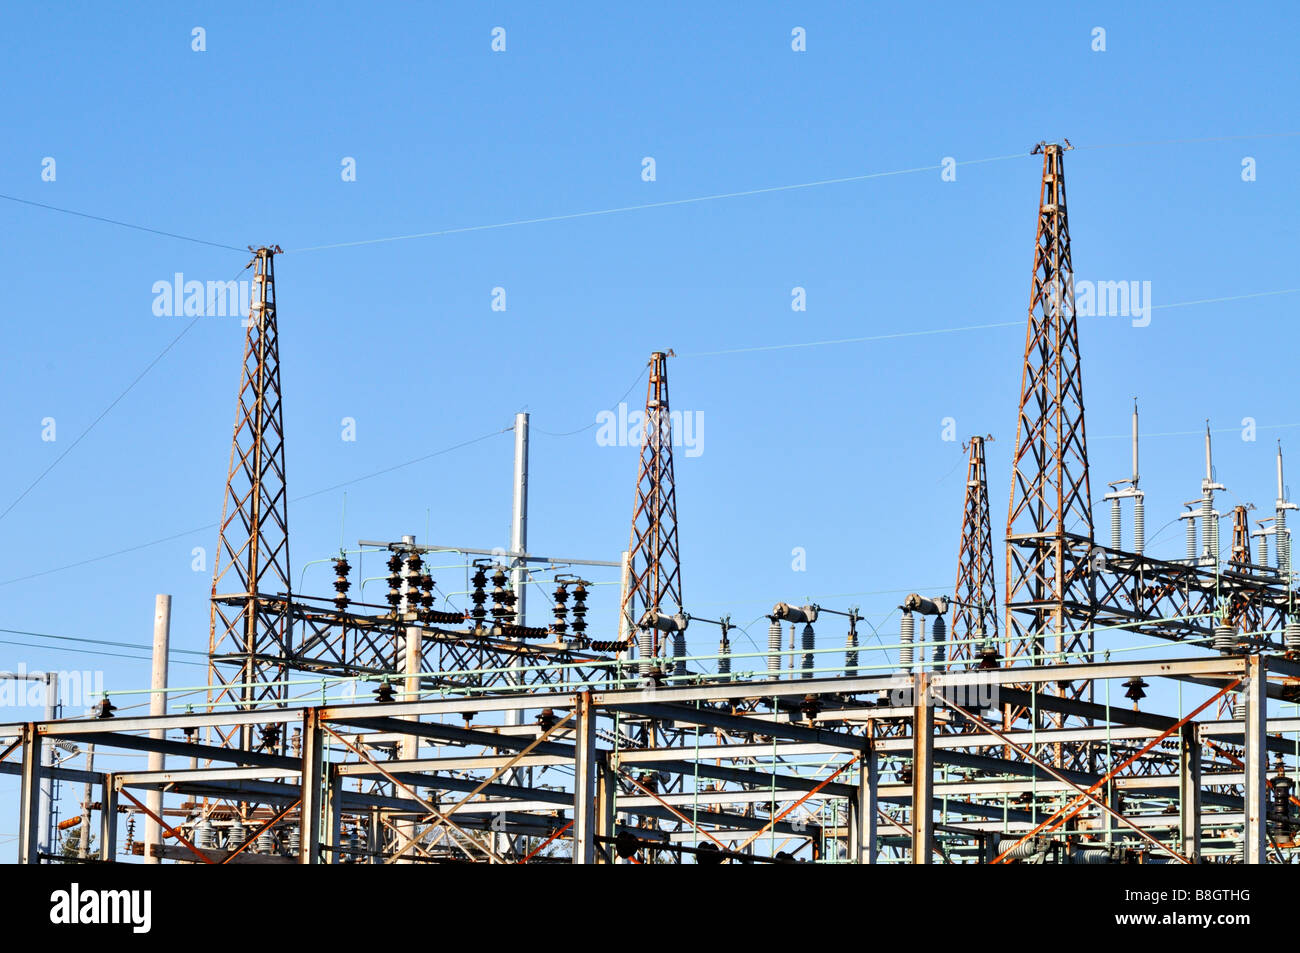 Electrical substation switch towers - Stock Image